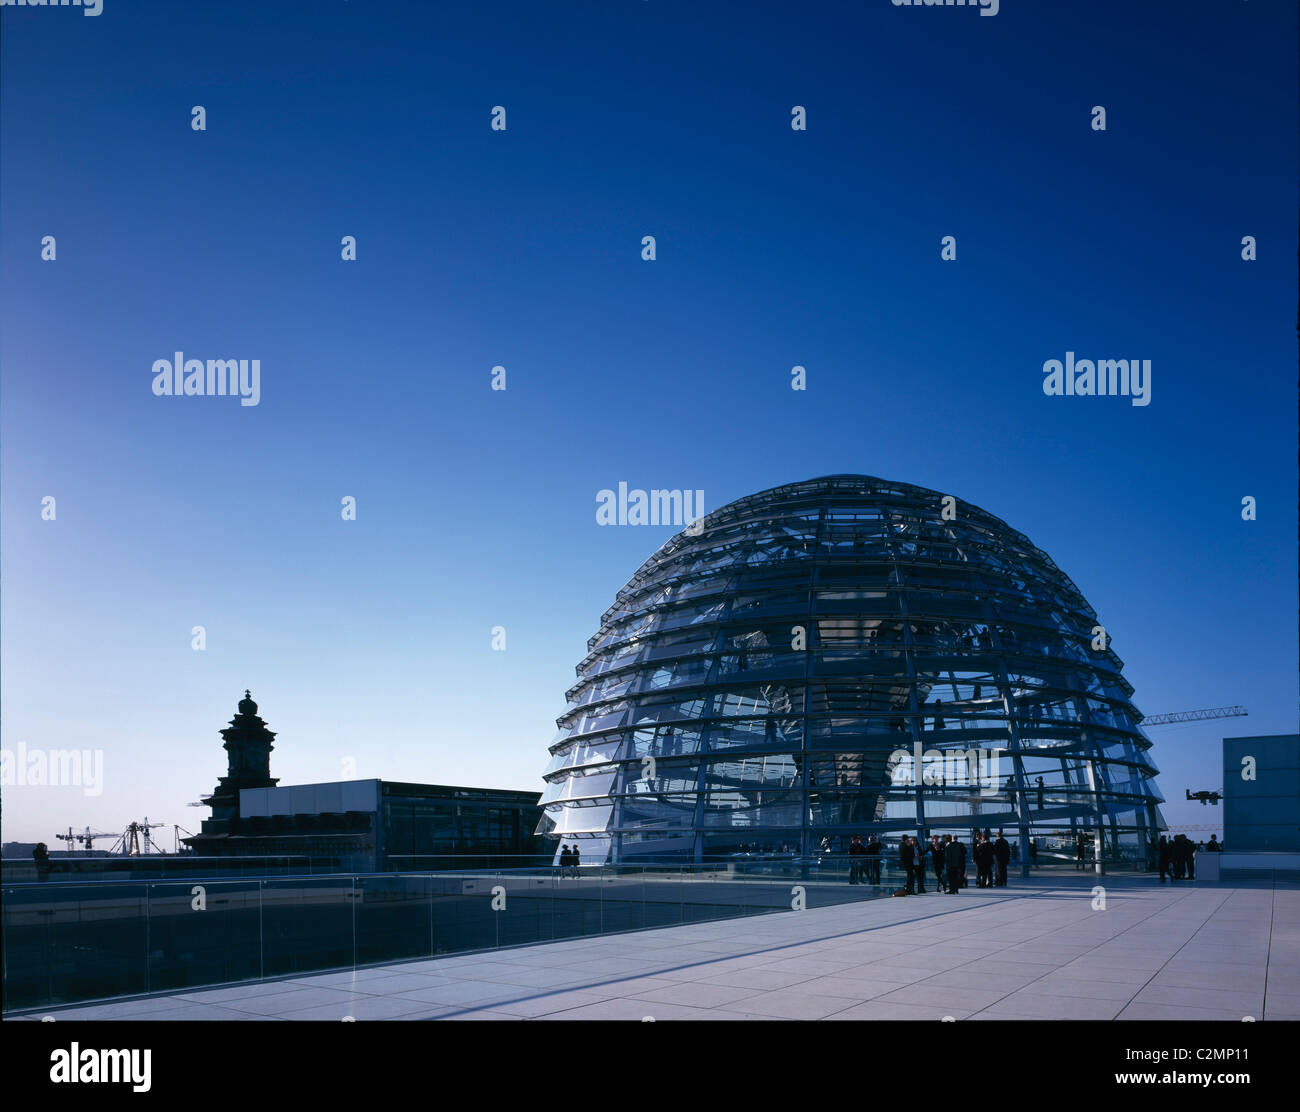 Reichstag, Platz der Republik, Berlin, Germany - The dome - looking North - Stock Image